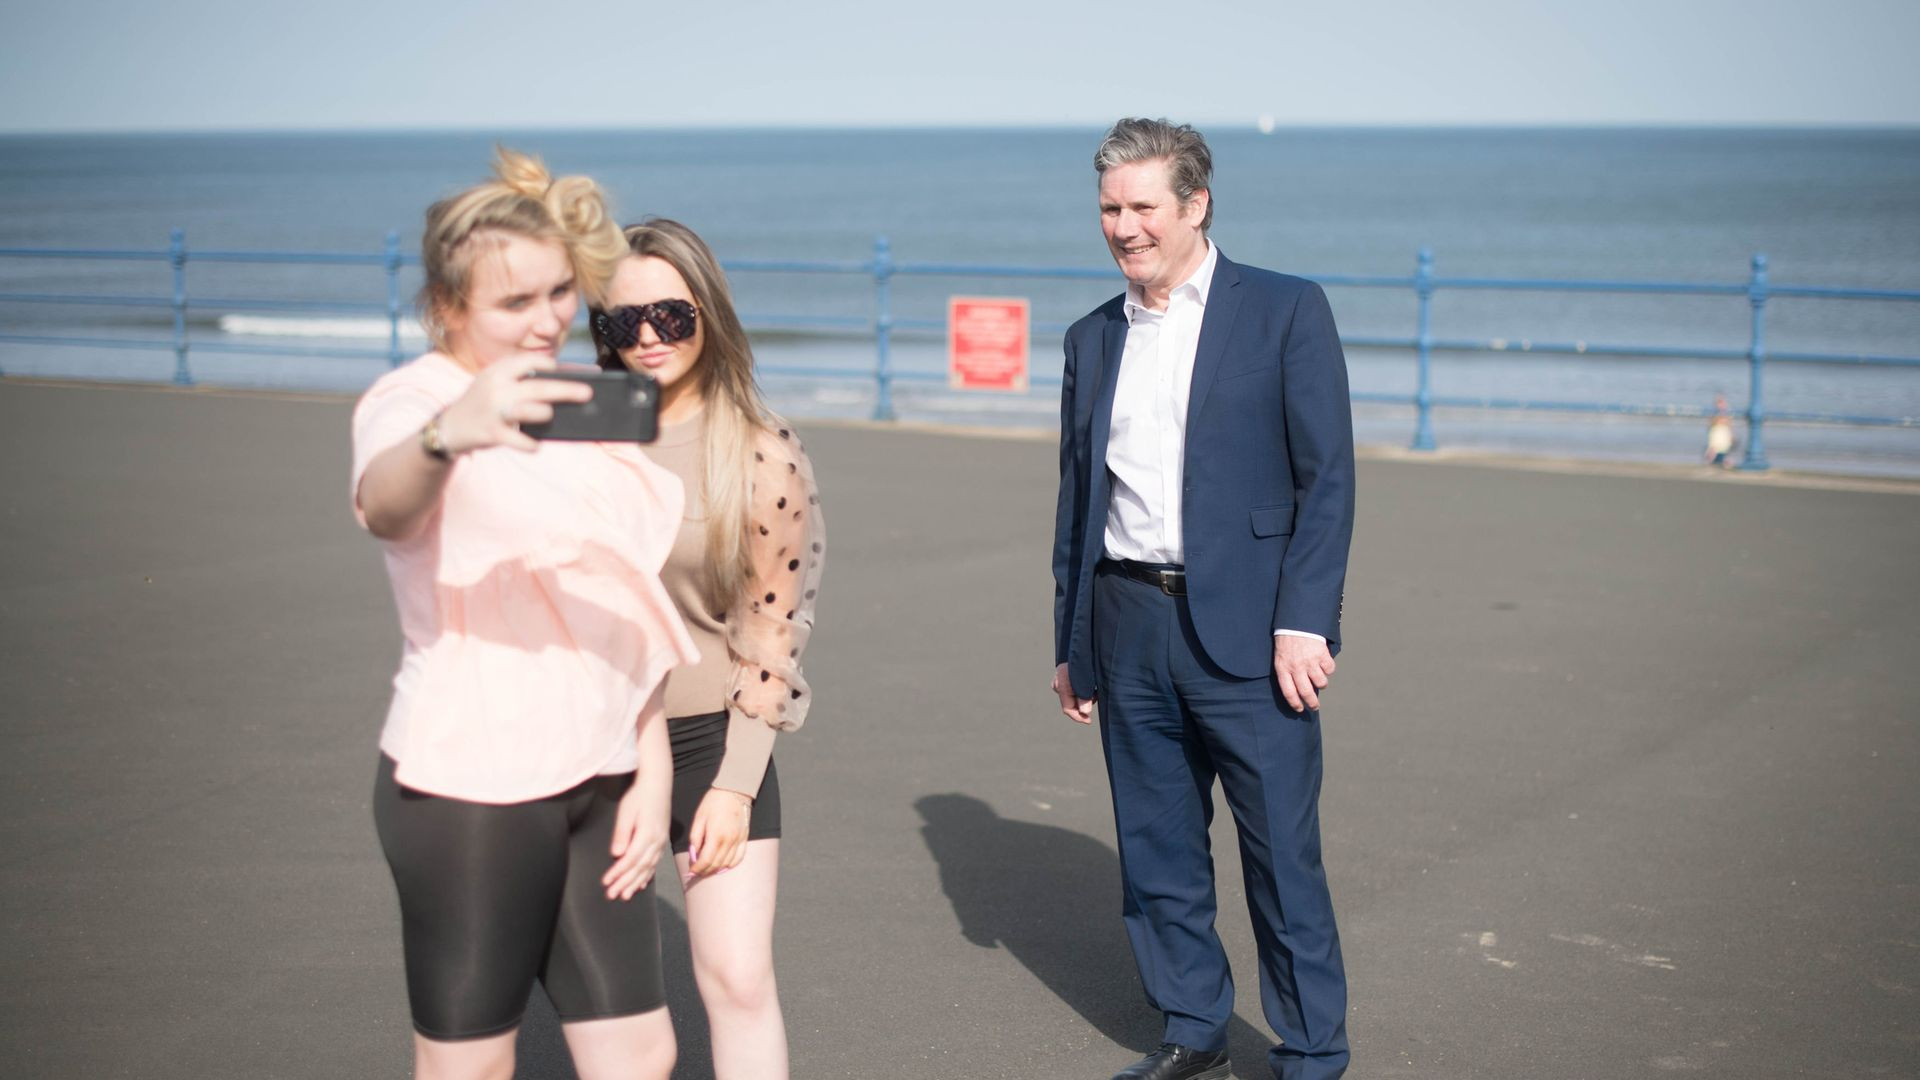 Labour Party leader Sir Keir Starmer meets locals during campaigning for the Hartlepool by-election - Credit: Getty Images